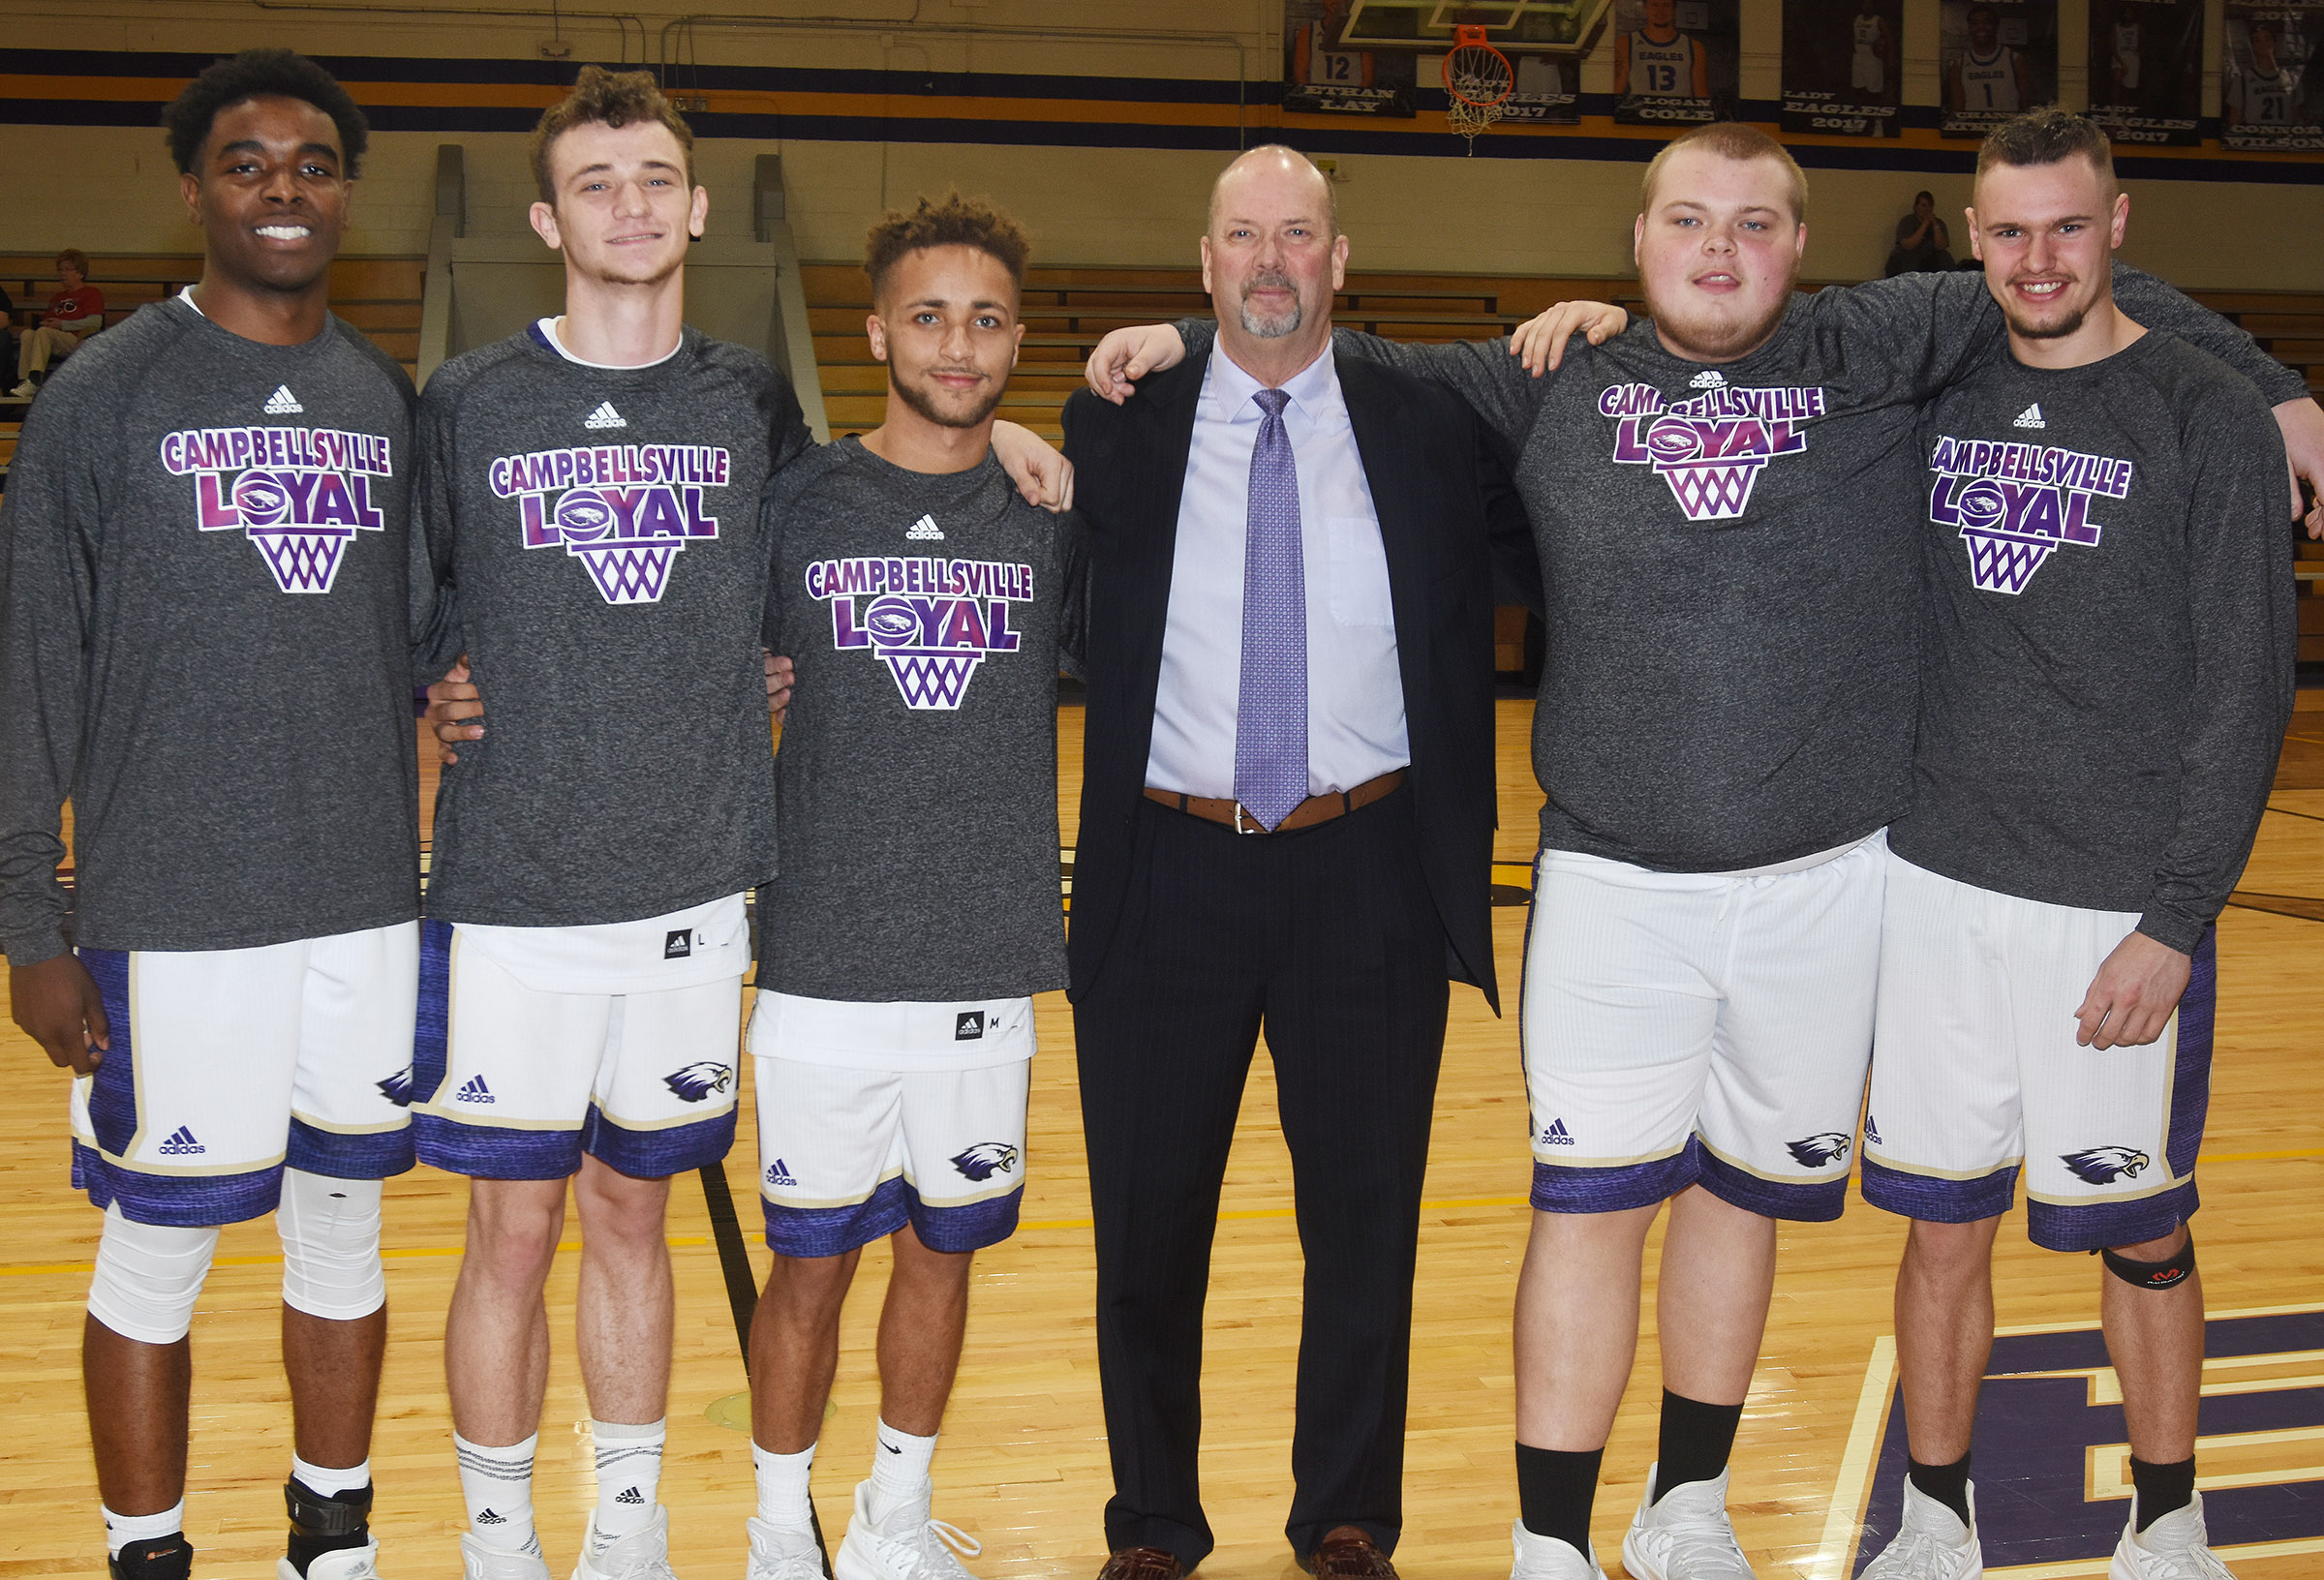 From left, CHS boys' basketball senior players Chanson Atkinson, Connor Wilson, Ethan Lay, Toyse Cox and Logan Cole are pictured with head coach Tim Davis as they are honored for their dedication to their team.